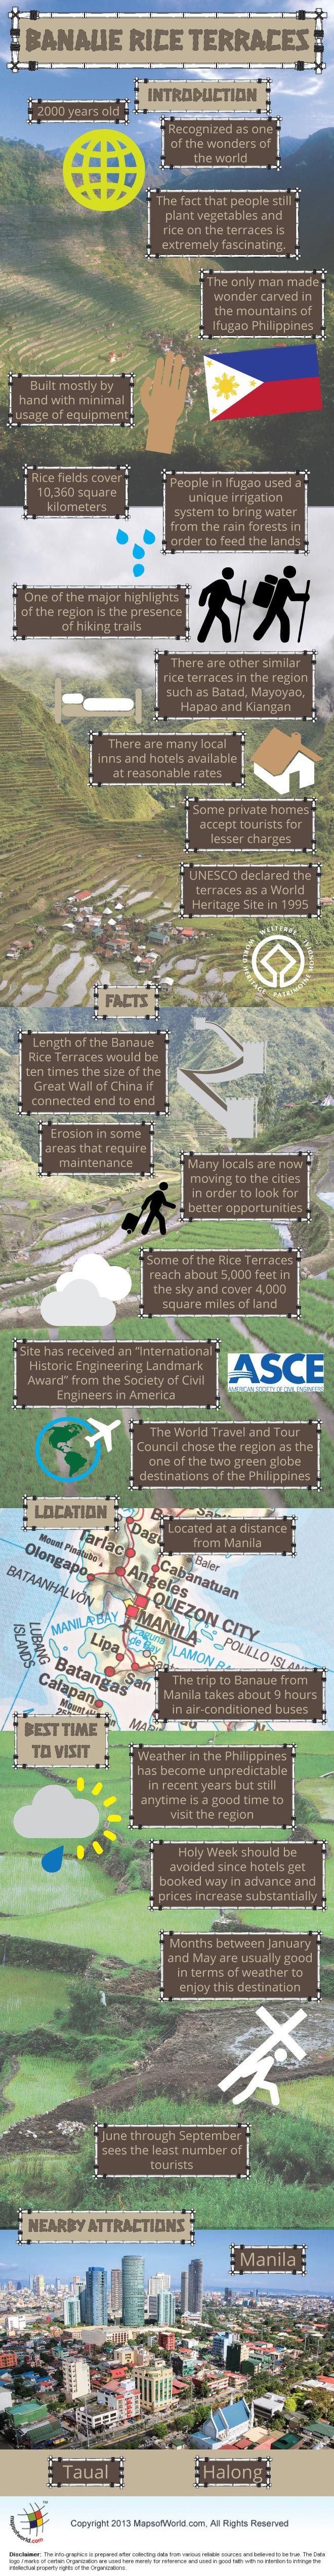 Banaue Rice Terraces - Facts & Infographic